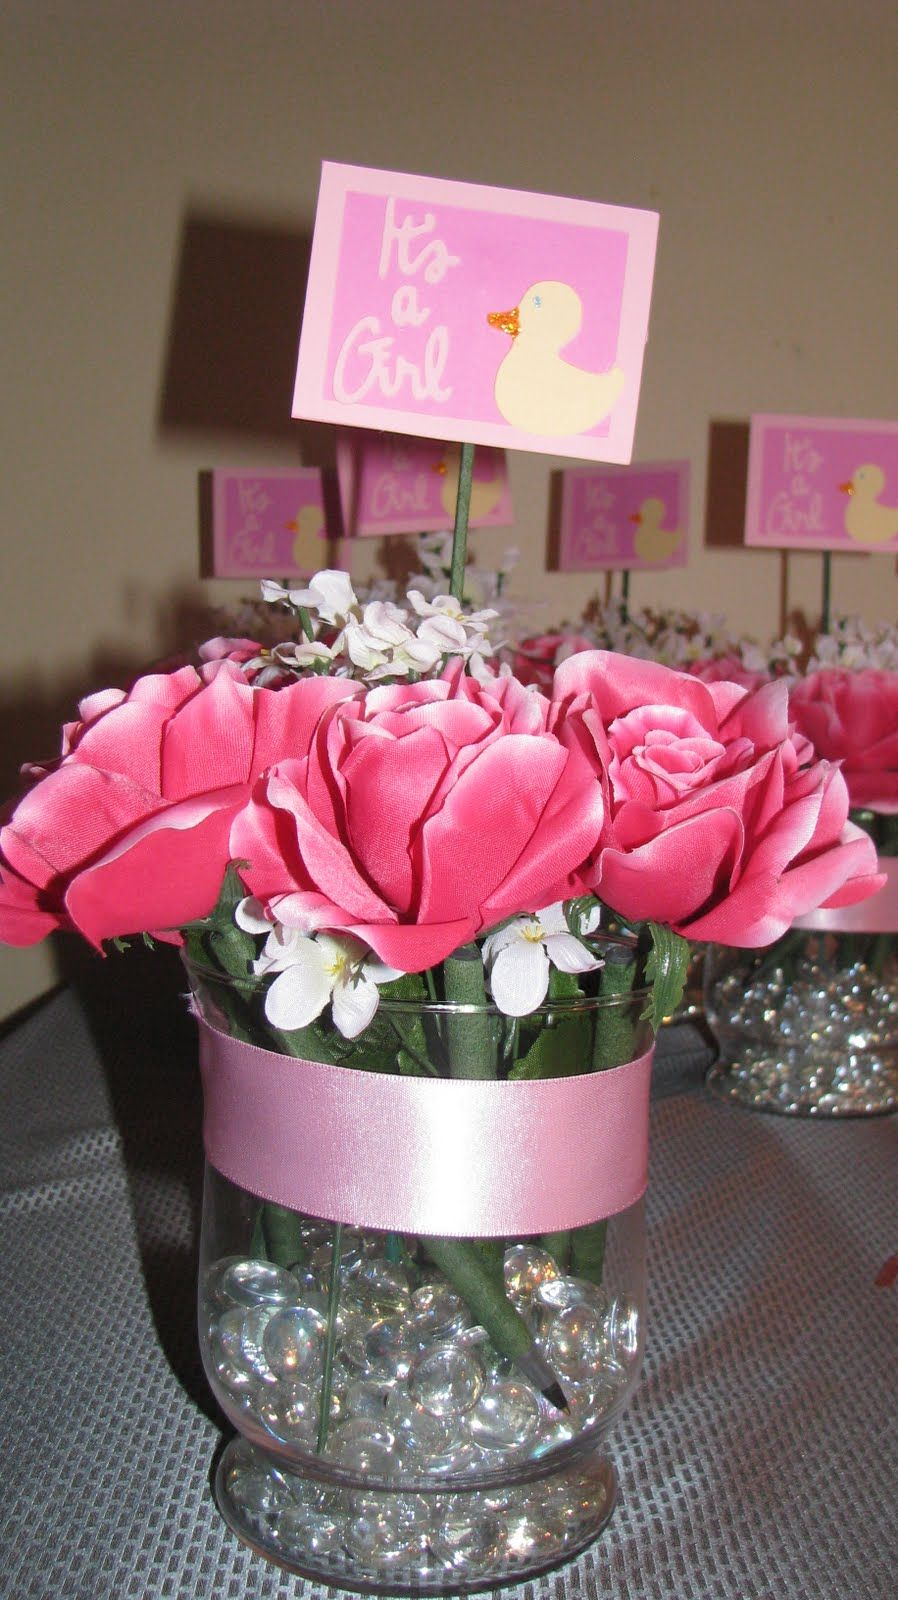 Baby shower centerpieces use pens for games then take